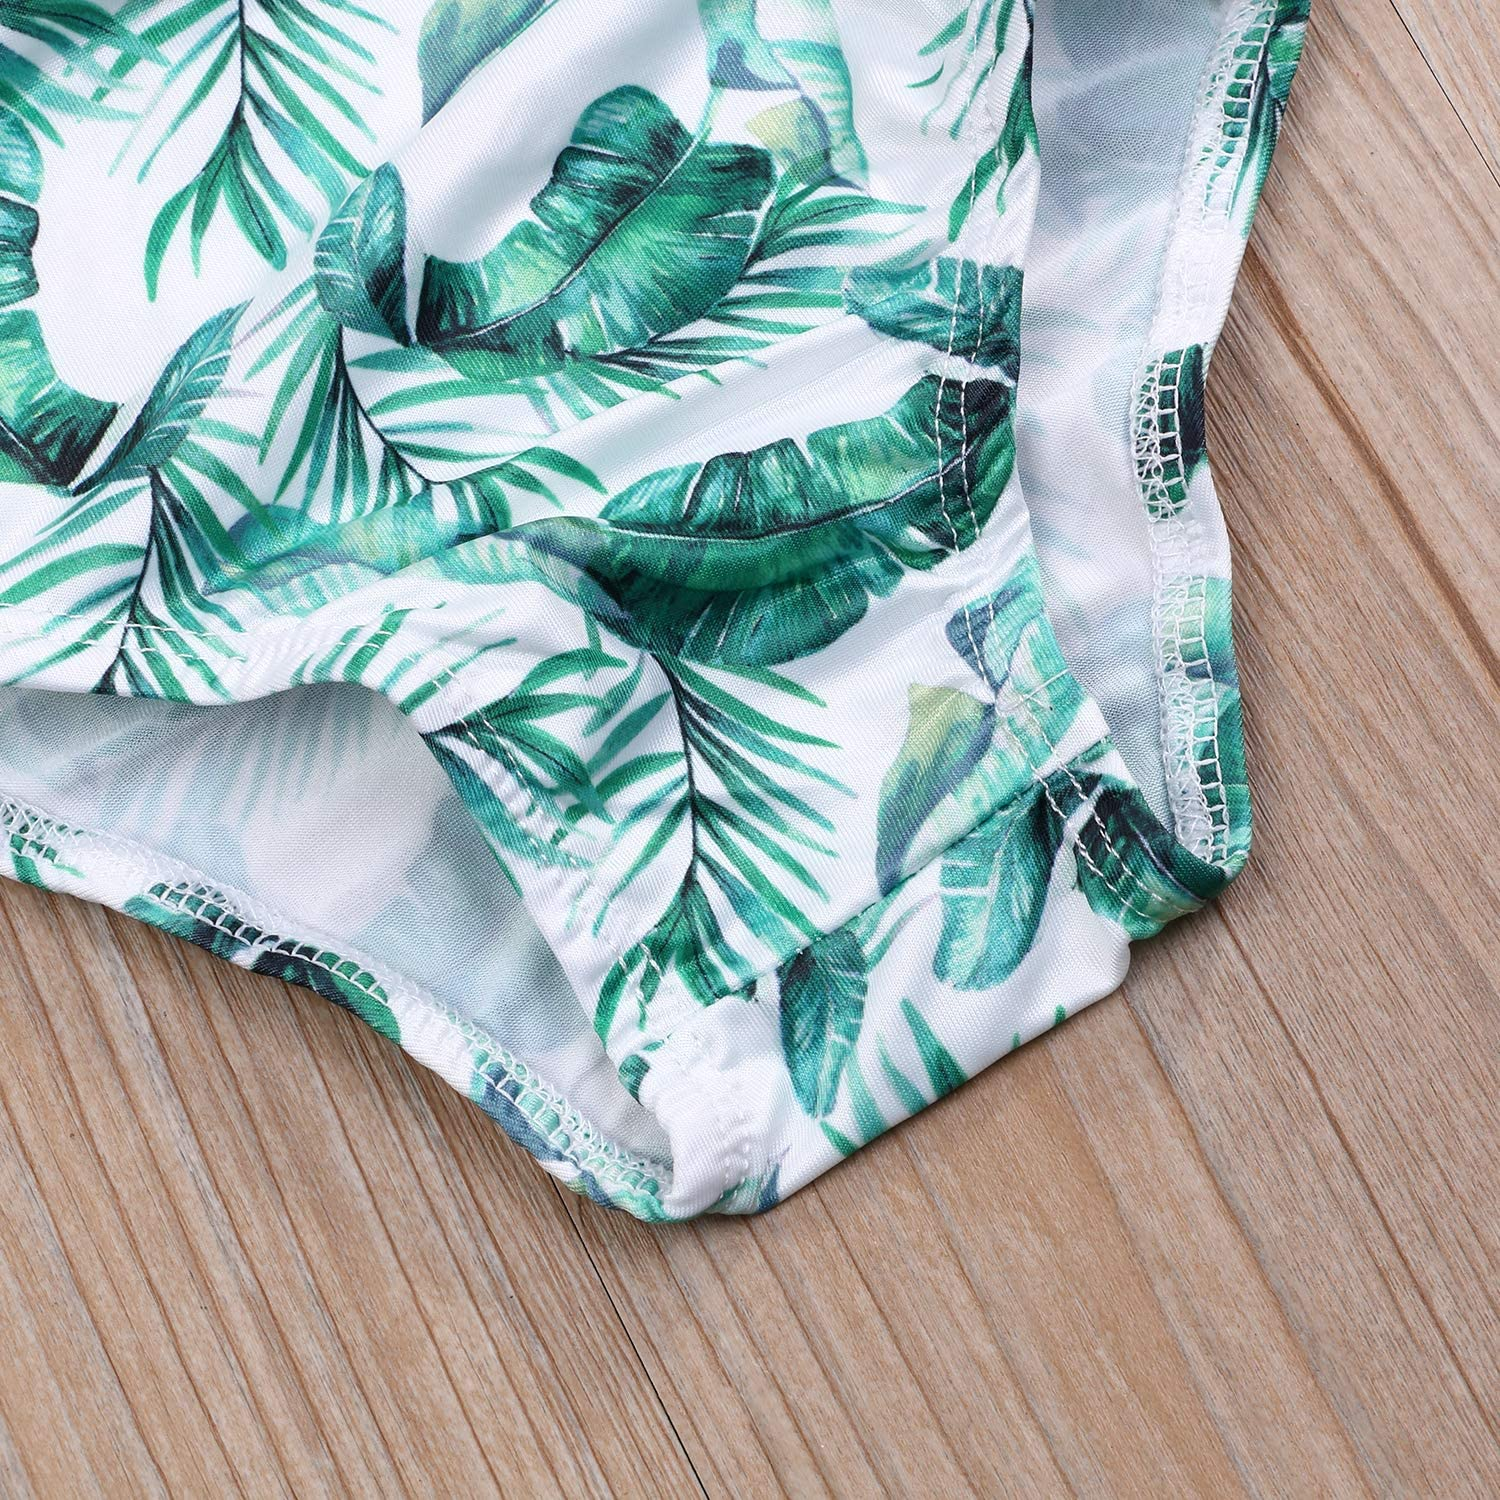 4-5T, Pink+Leaves Sun Protection Toddler Kids Baby Girls Sunsuit Tropical Leaves Print One//Two Pieces Swimsuit Bikini with UPF 50